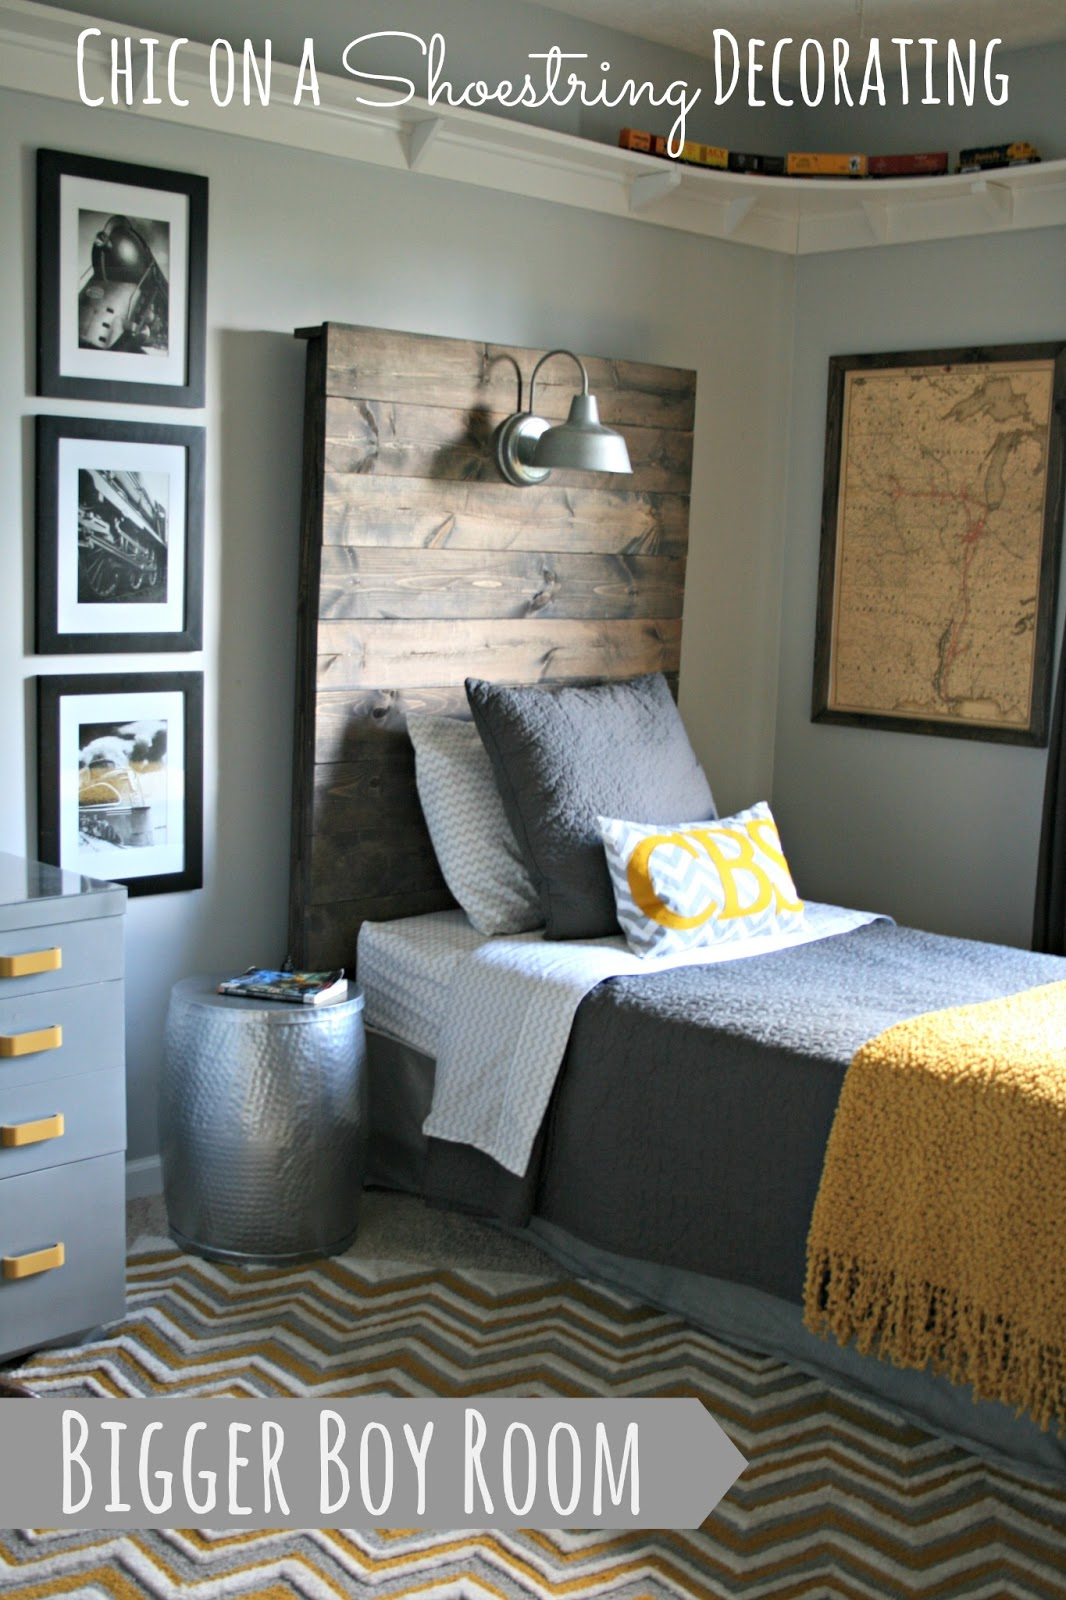 10 year old bedroom ideas Photo - 3 | Design your home